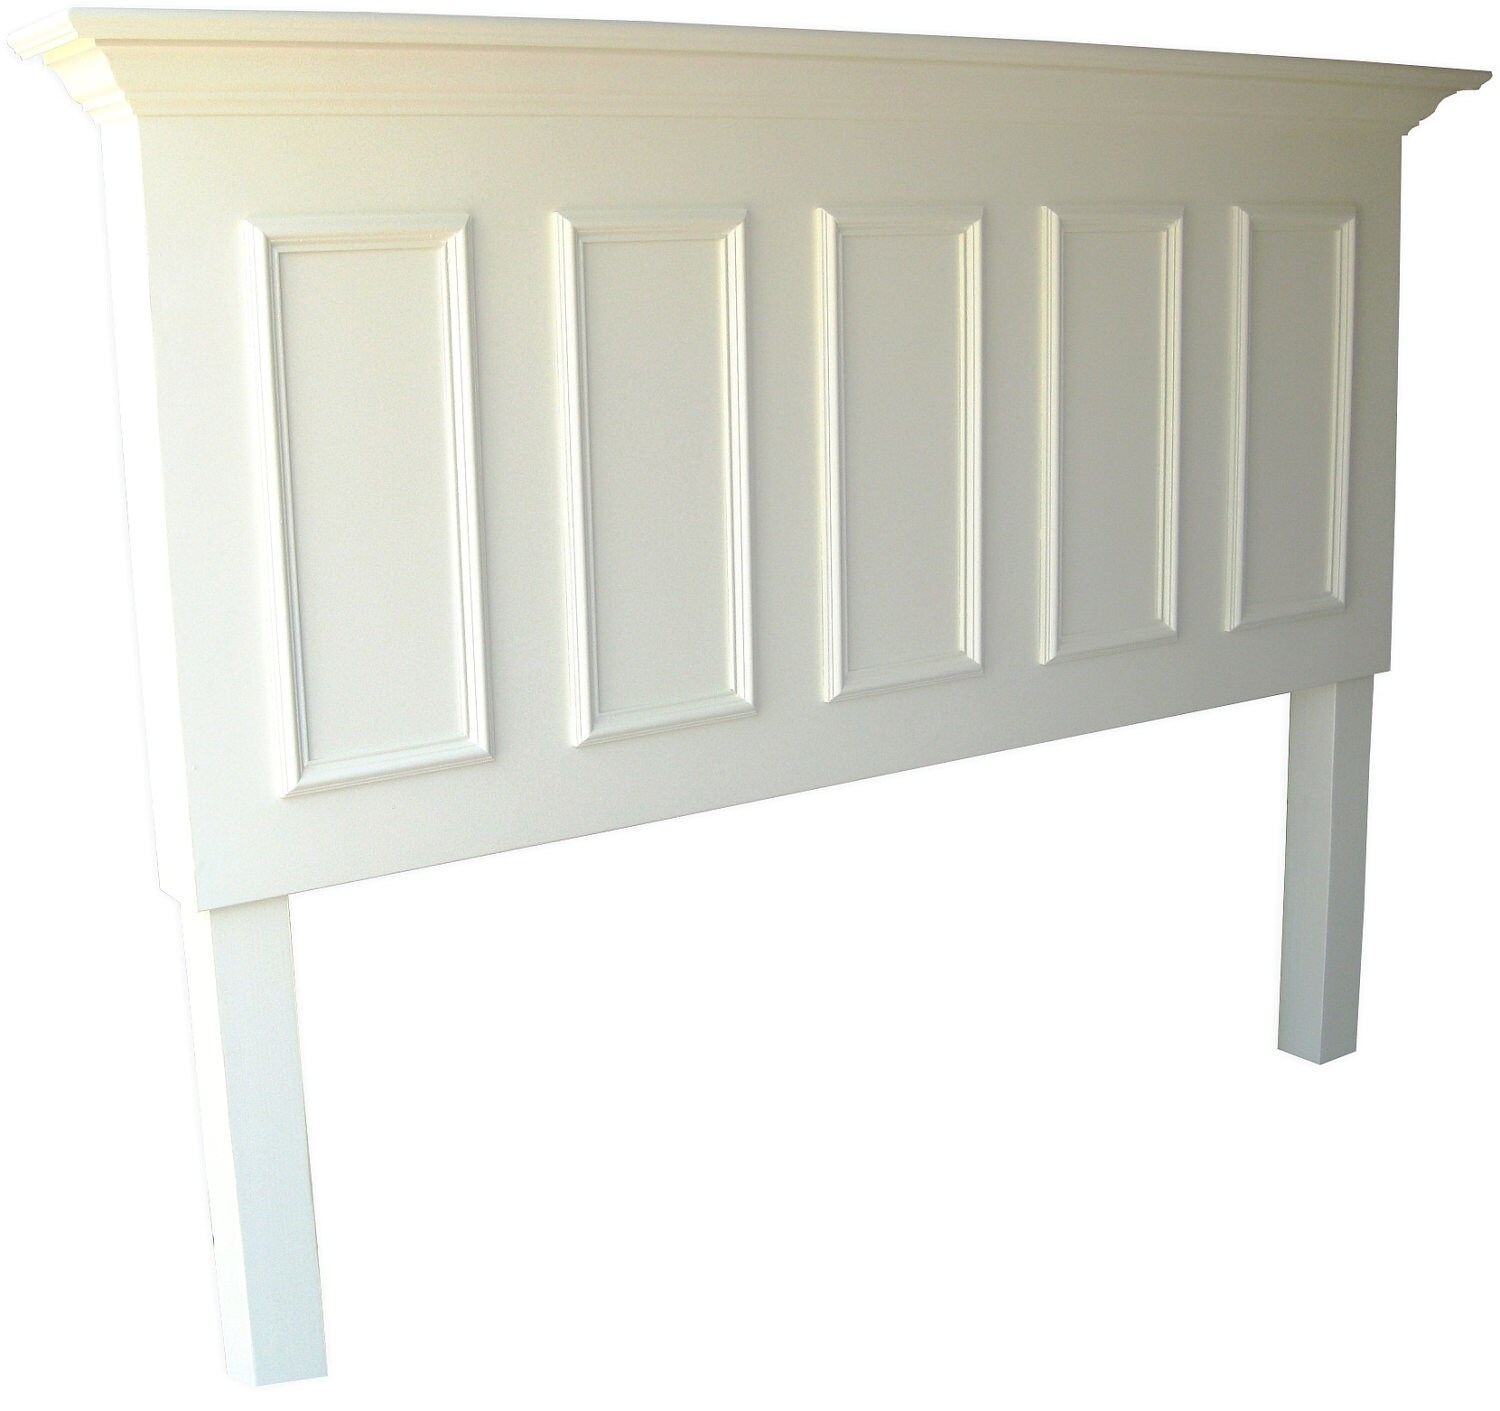 Headboards made from doors extended king size headboard with for King size headboard